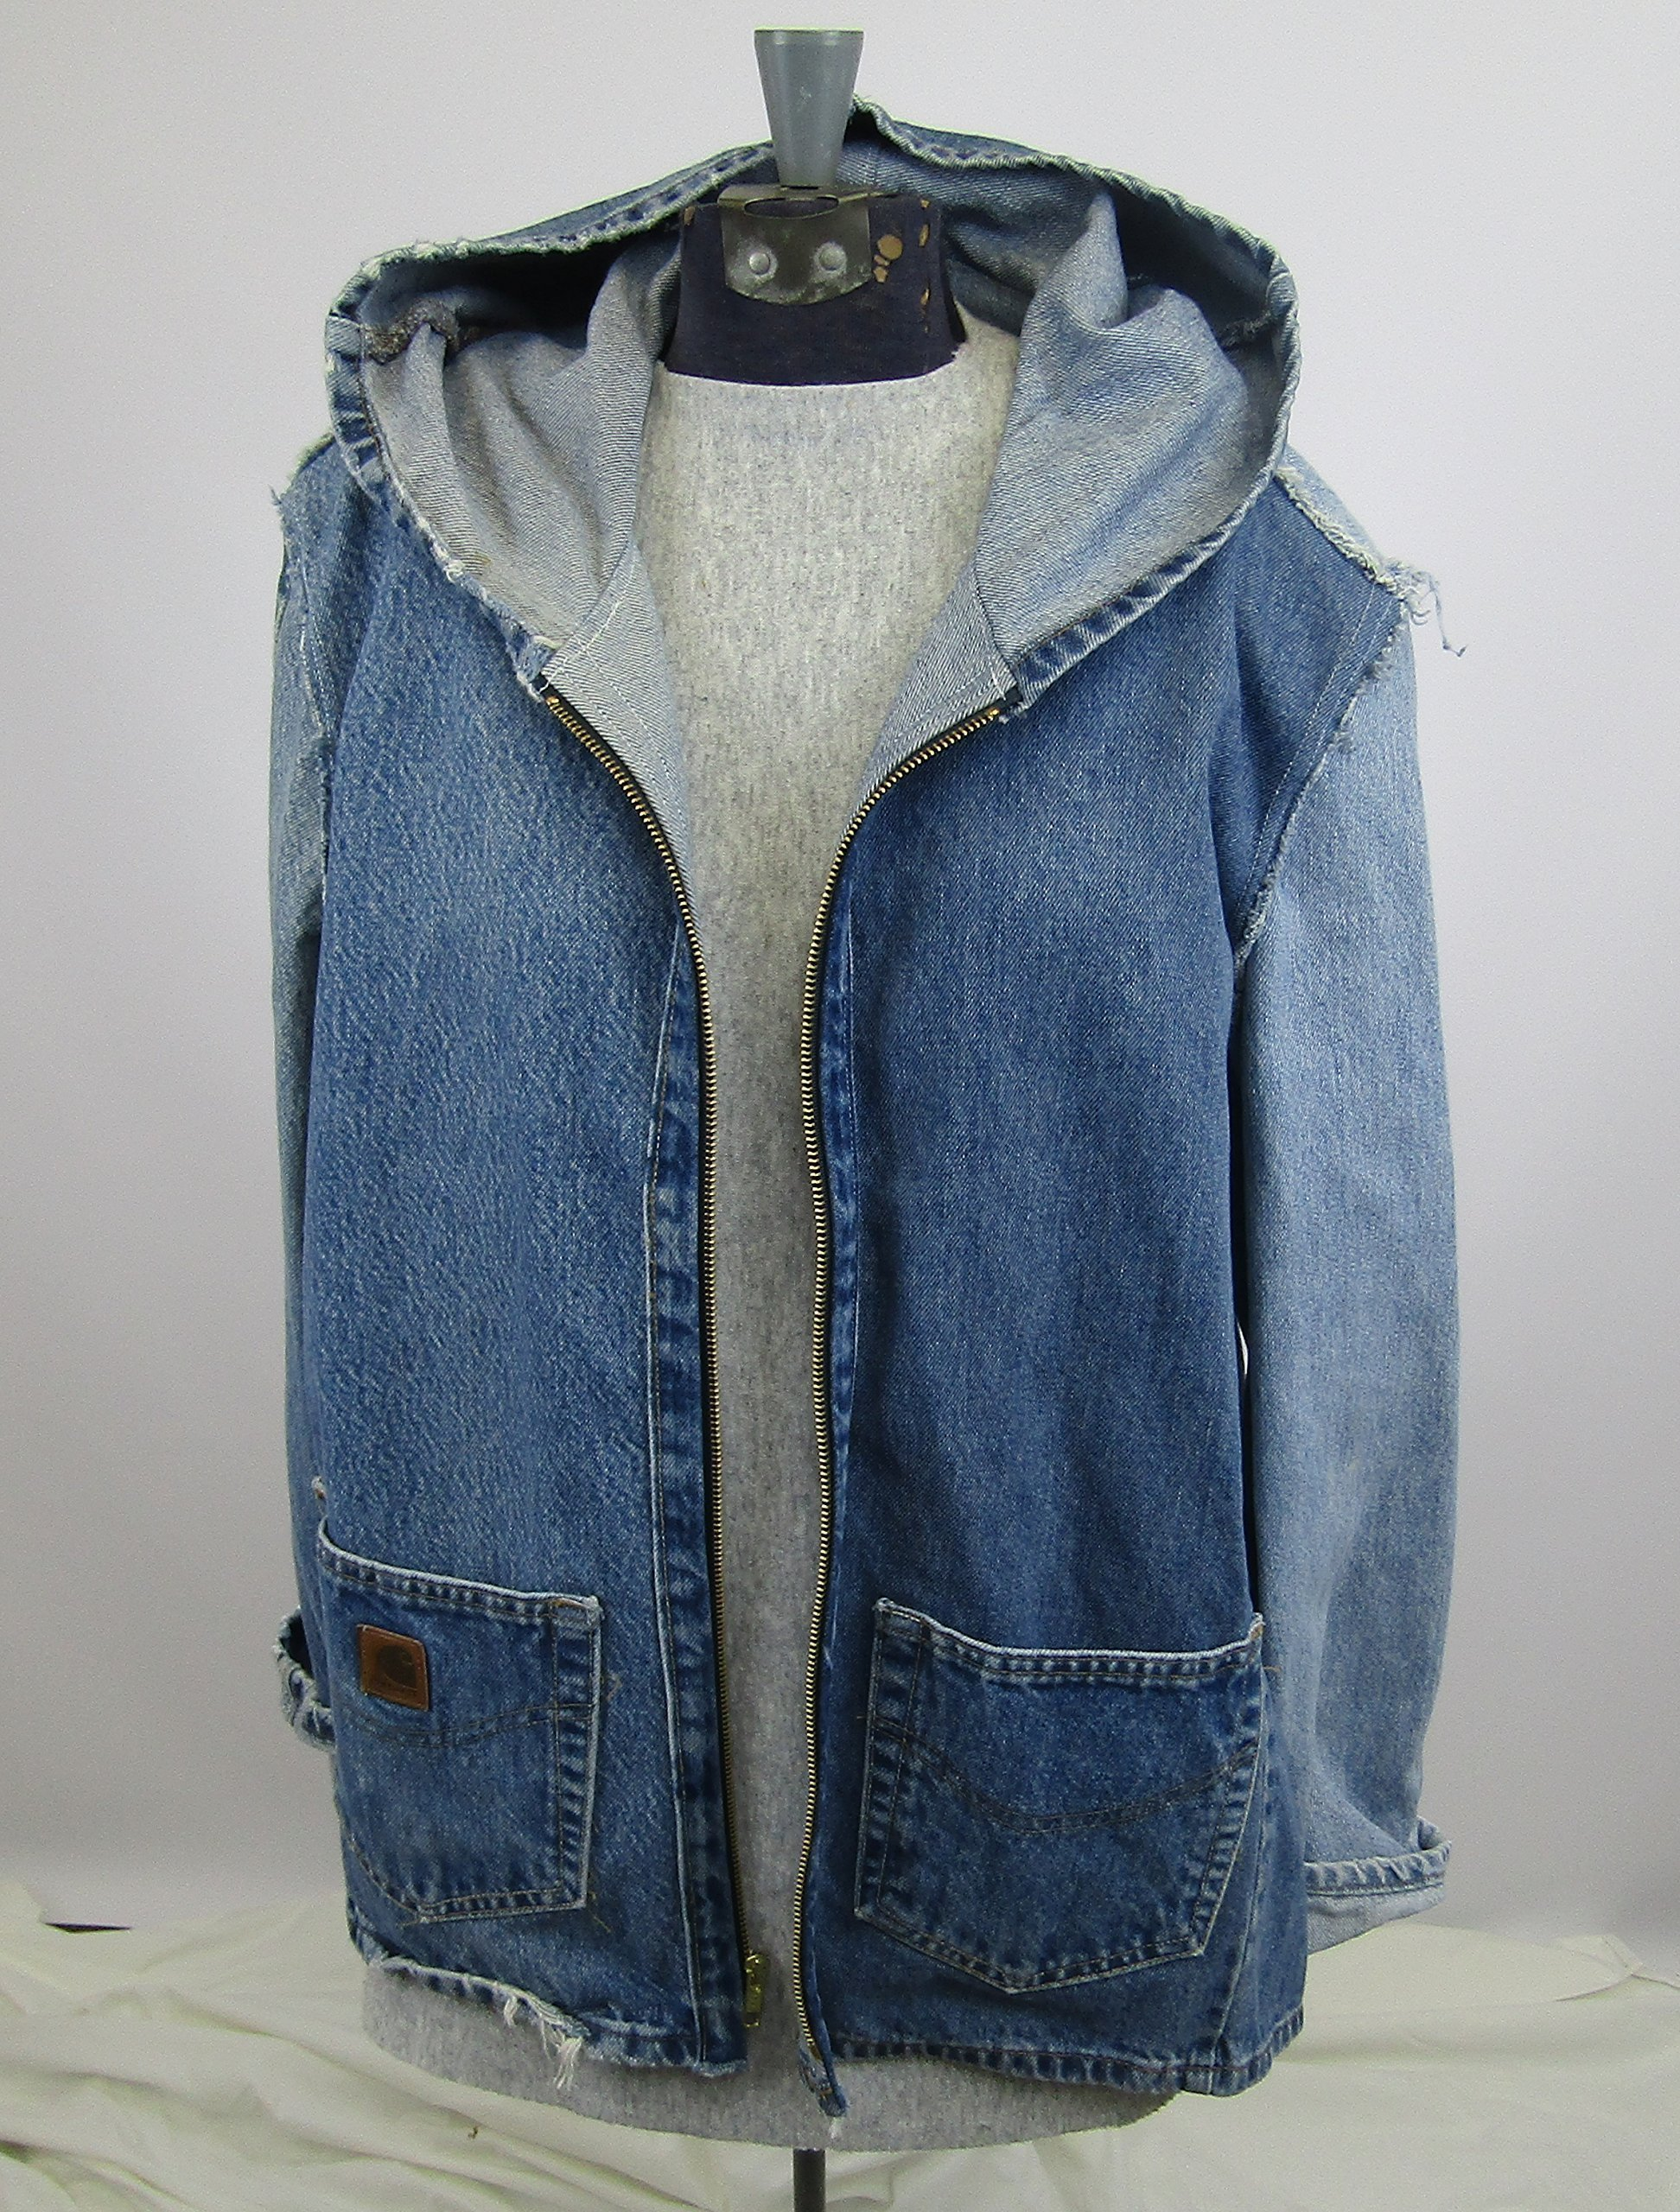 Hooded Denim Jacket Large made from repurposed jeans